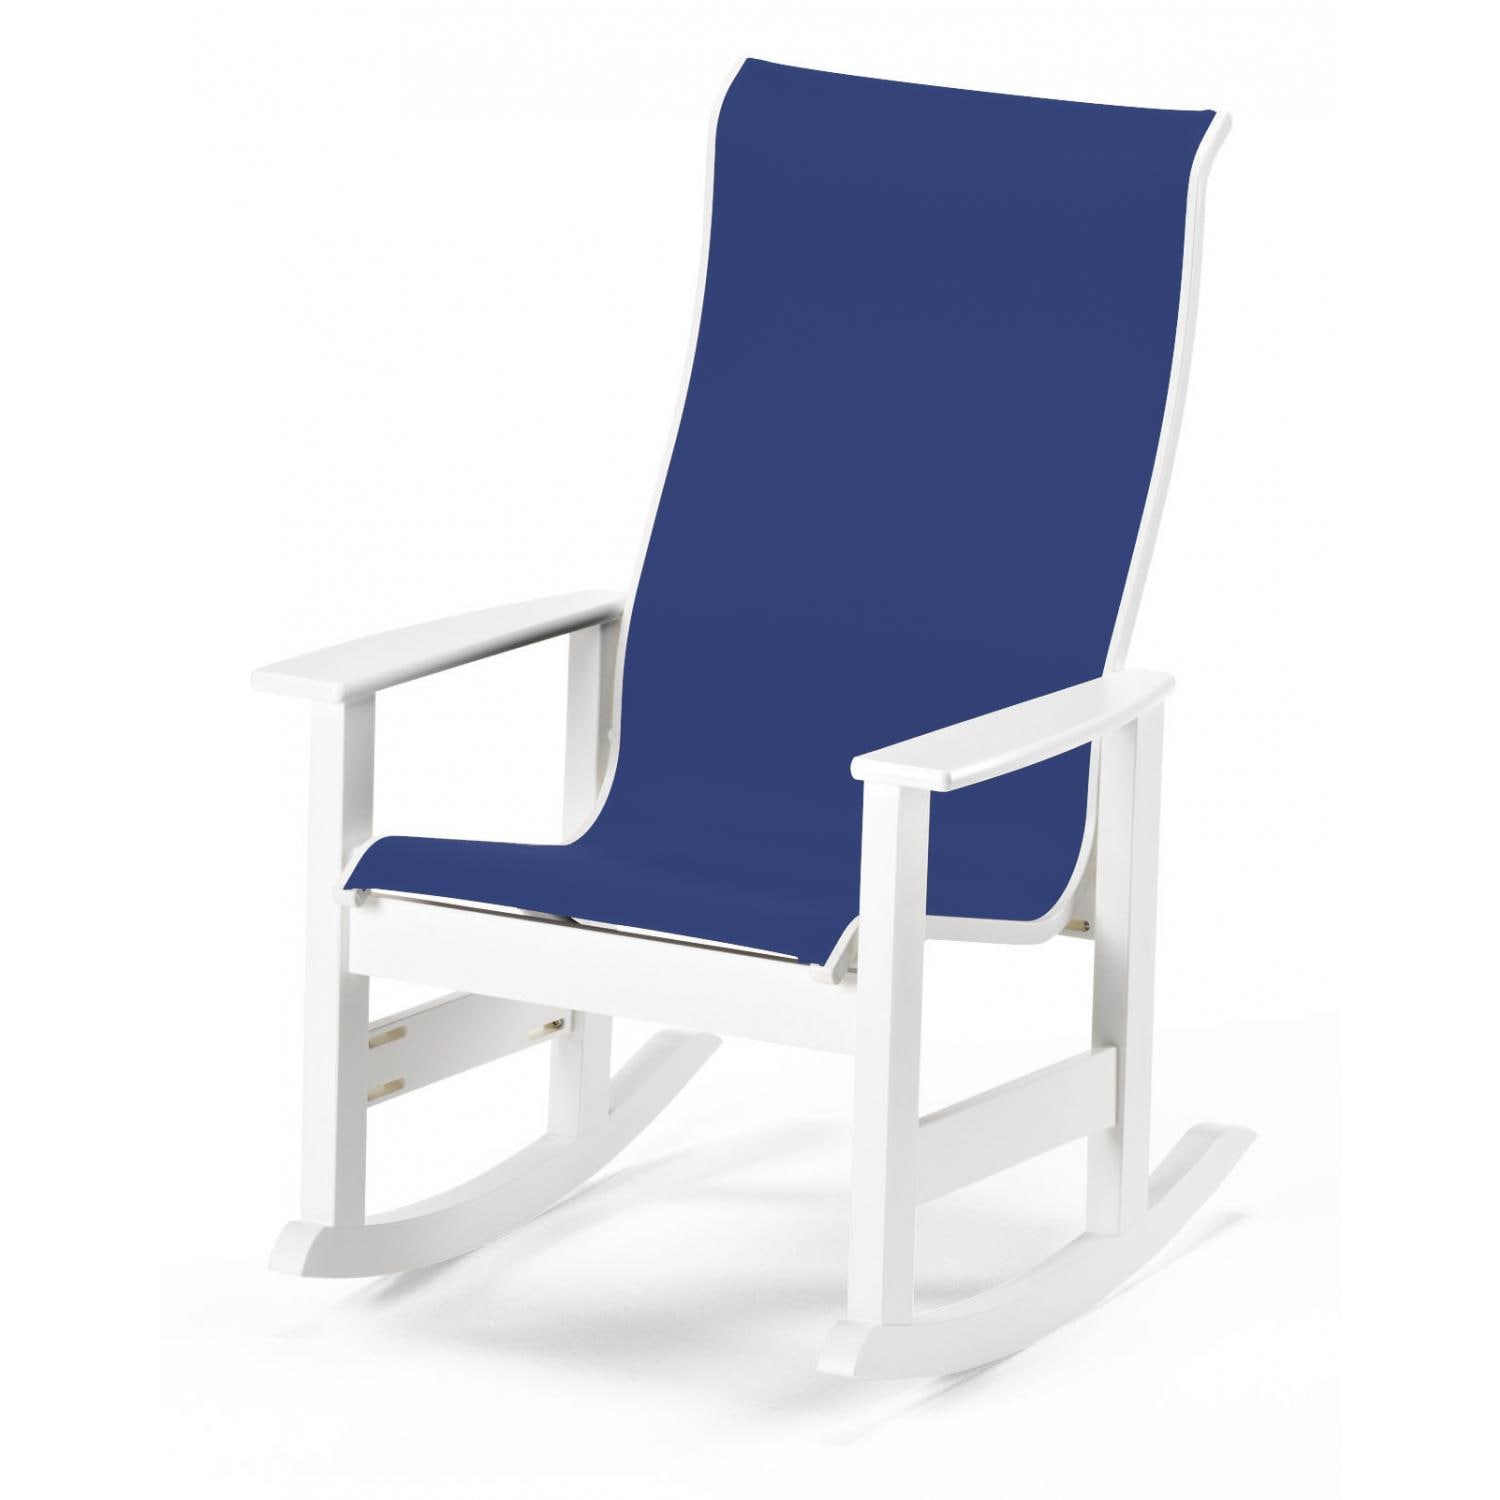 Patio Rocker Chairs Leeward Supreme Mgp Patio Rocking Chair With Sling Seating By Telescope Casual Textured Snow Atlantis